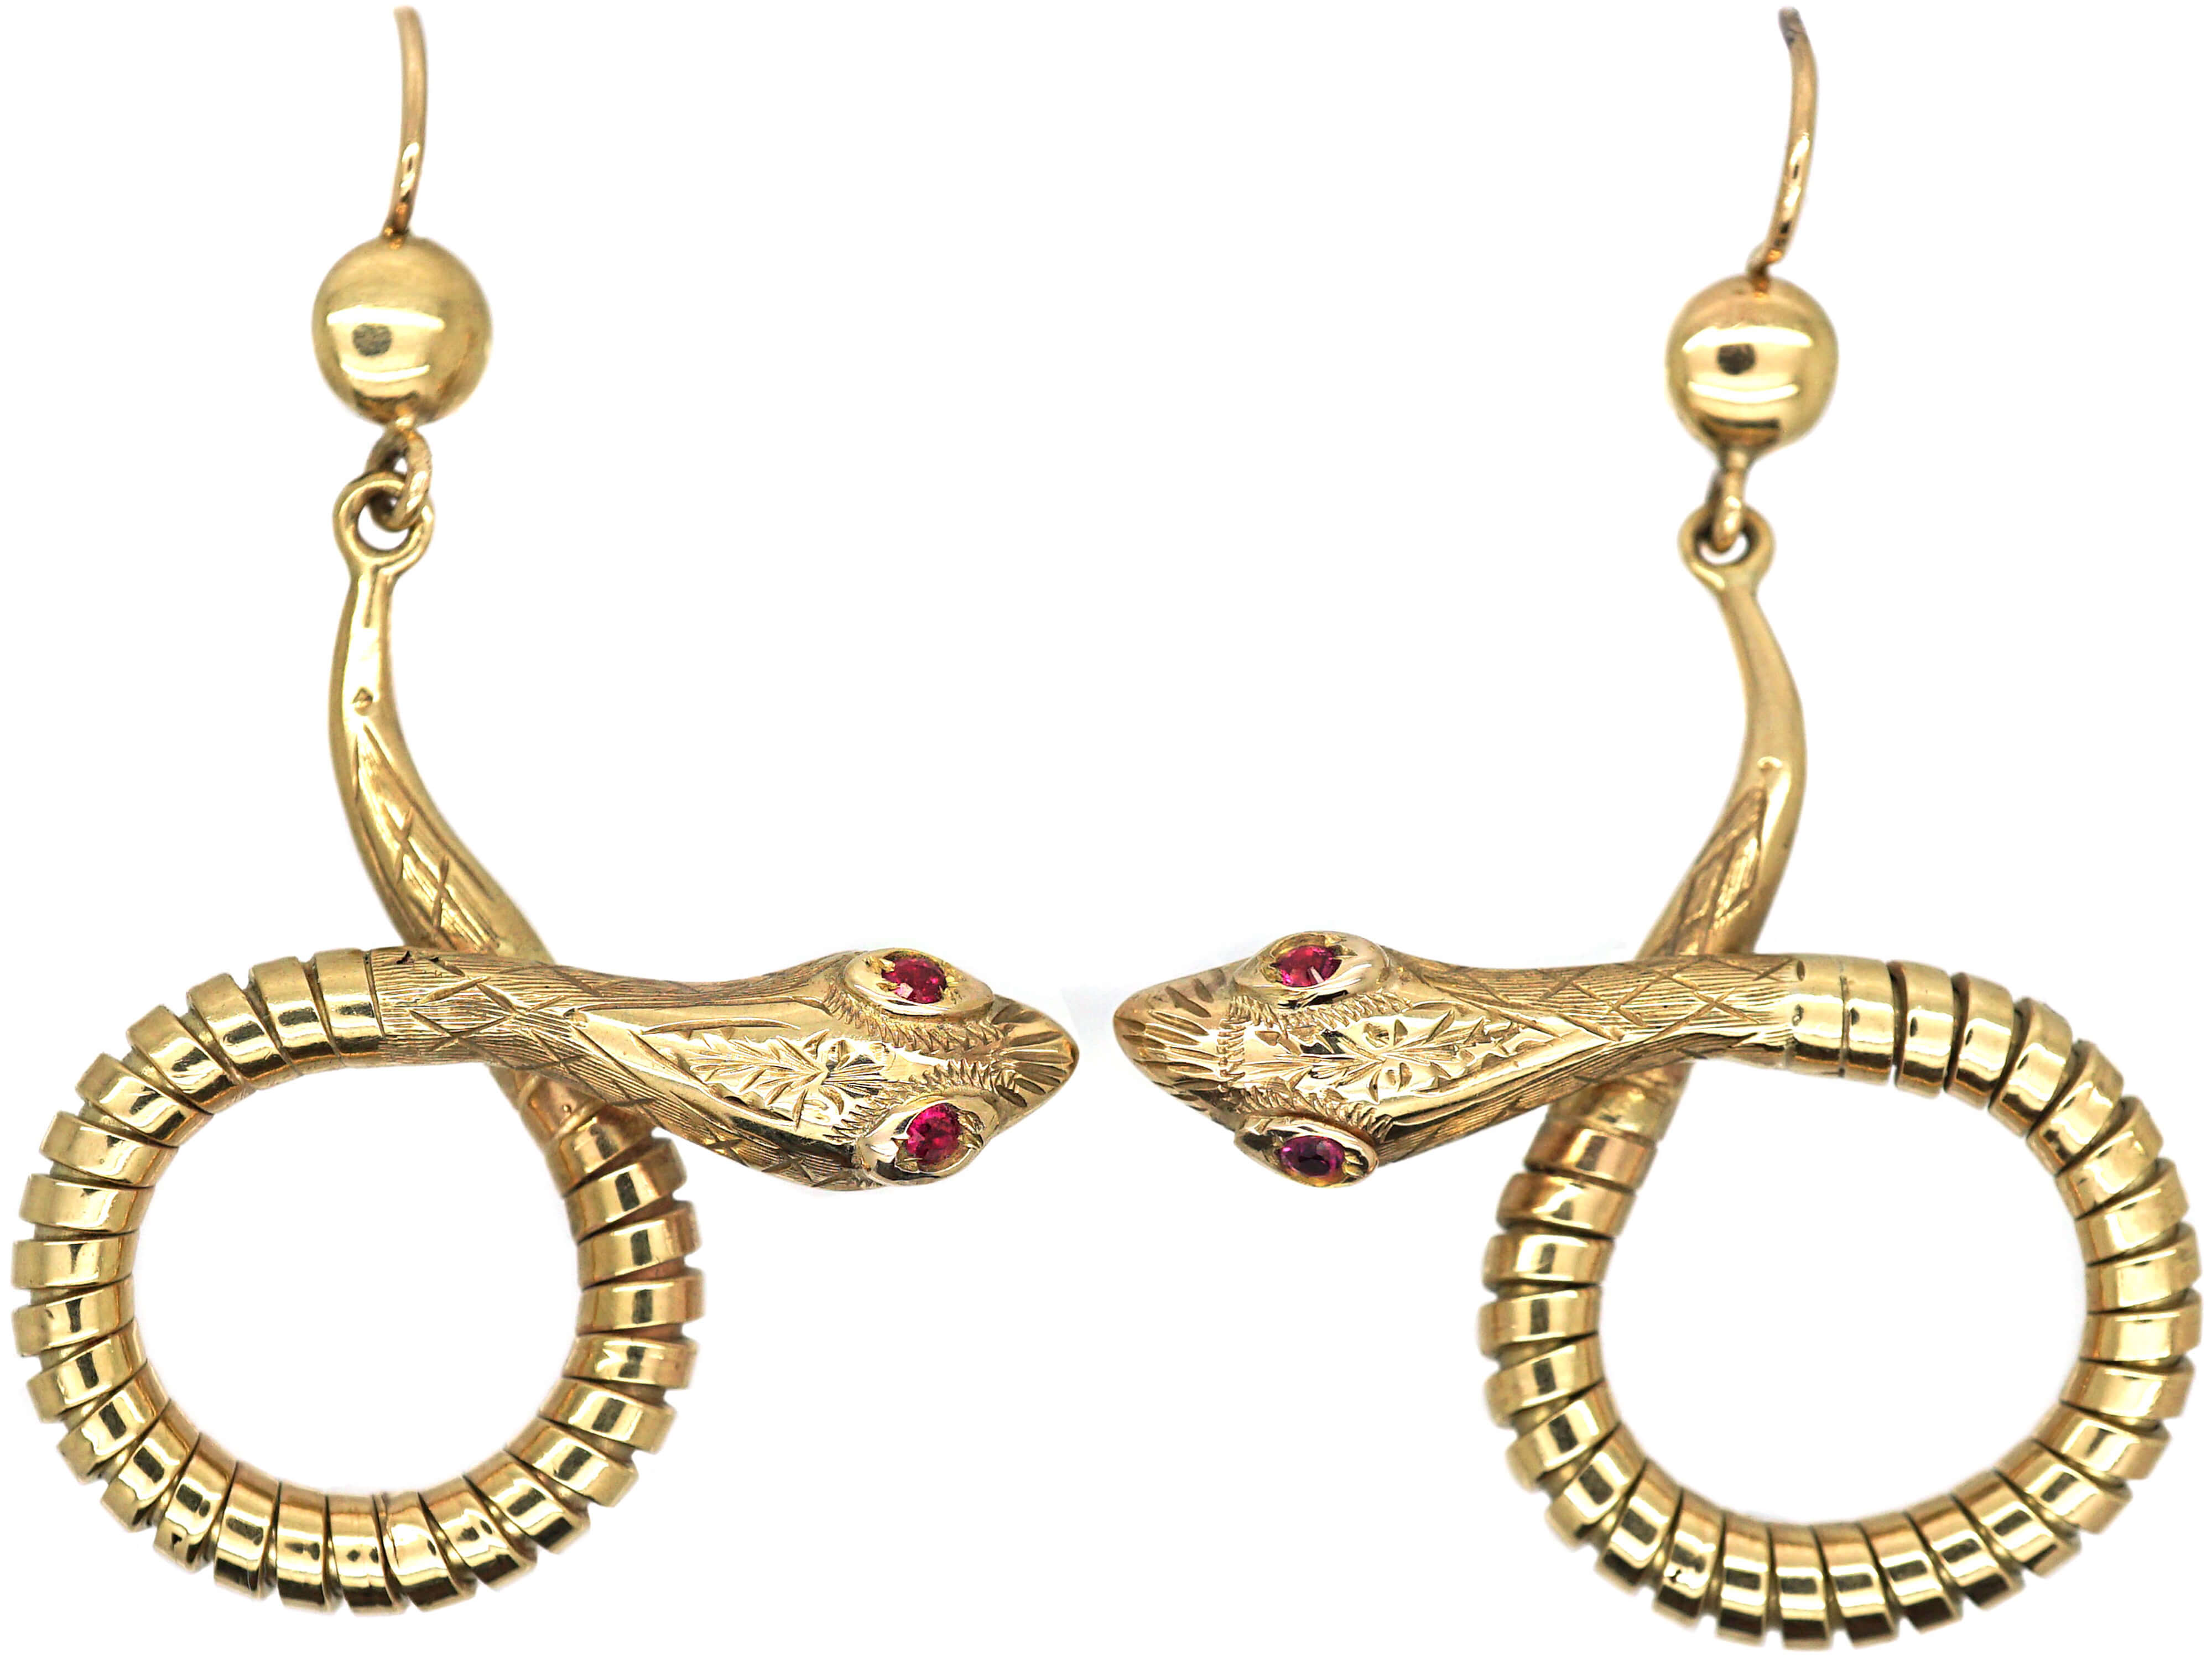 9ct Gold Snake Earrings with Ruby Set Eyes